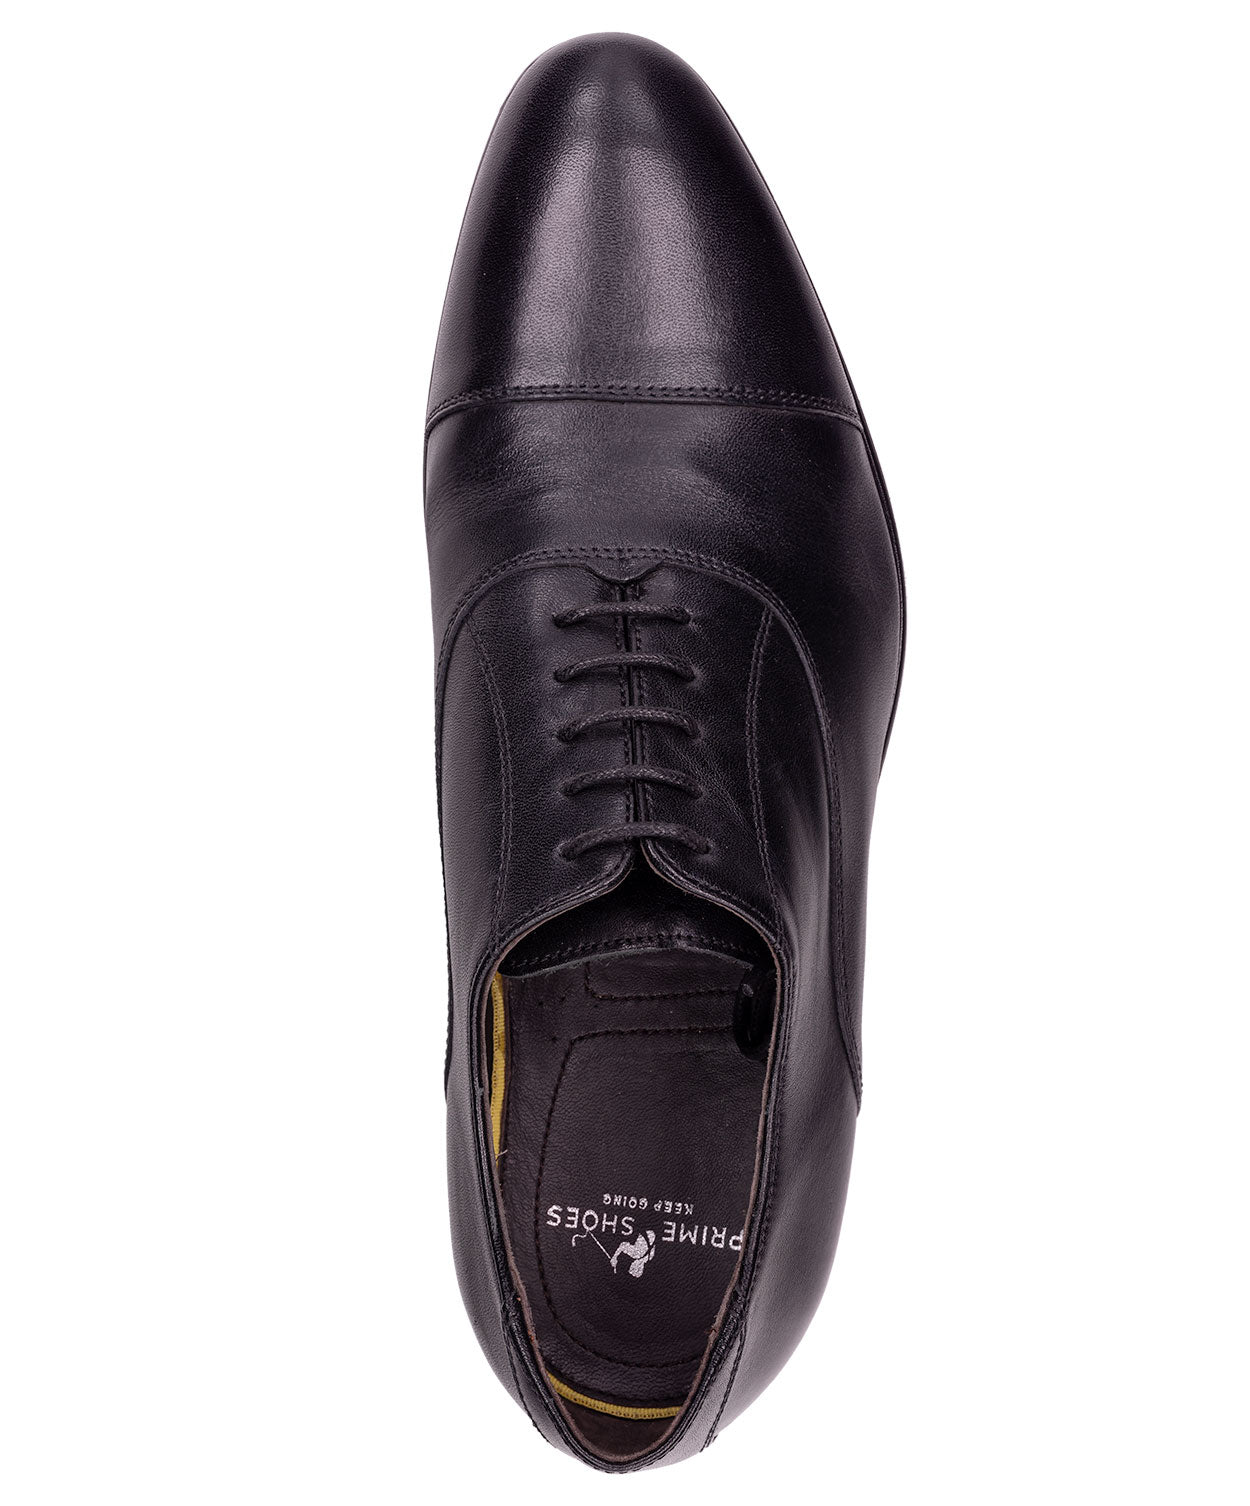 Black Comfort Flex Sole Dress Shoes